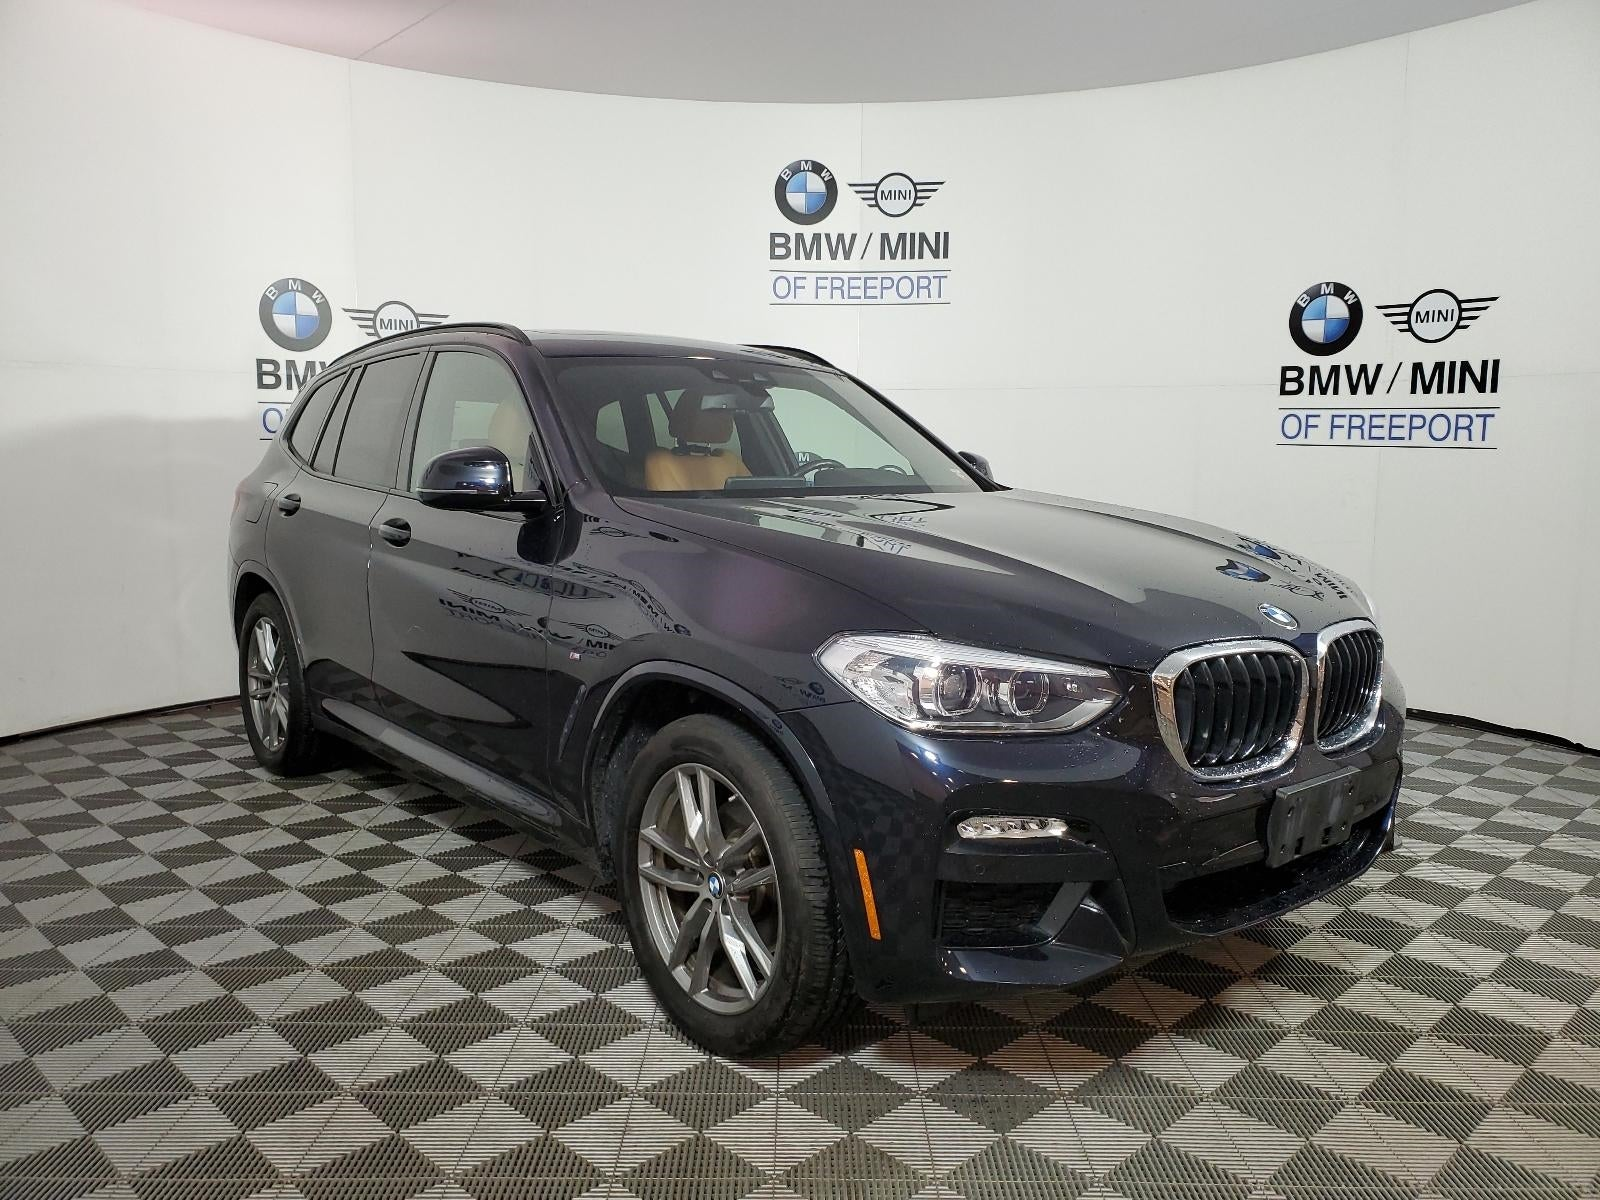 2019 Bmw X3 Xdrive30i Sports Activity Vehicle Freeport 5uxtr9c55kld94953